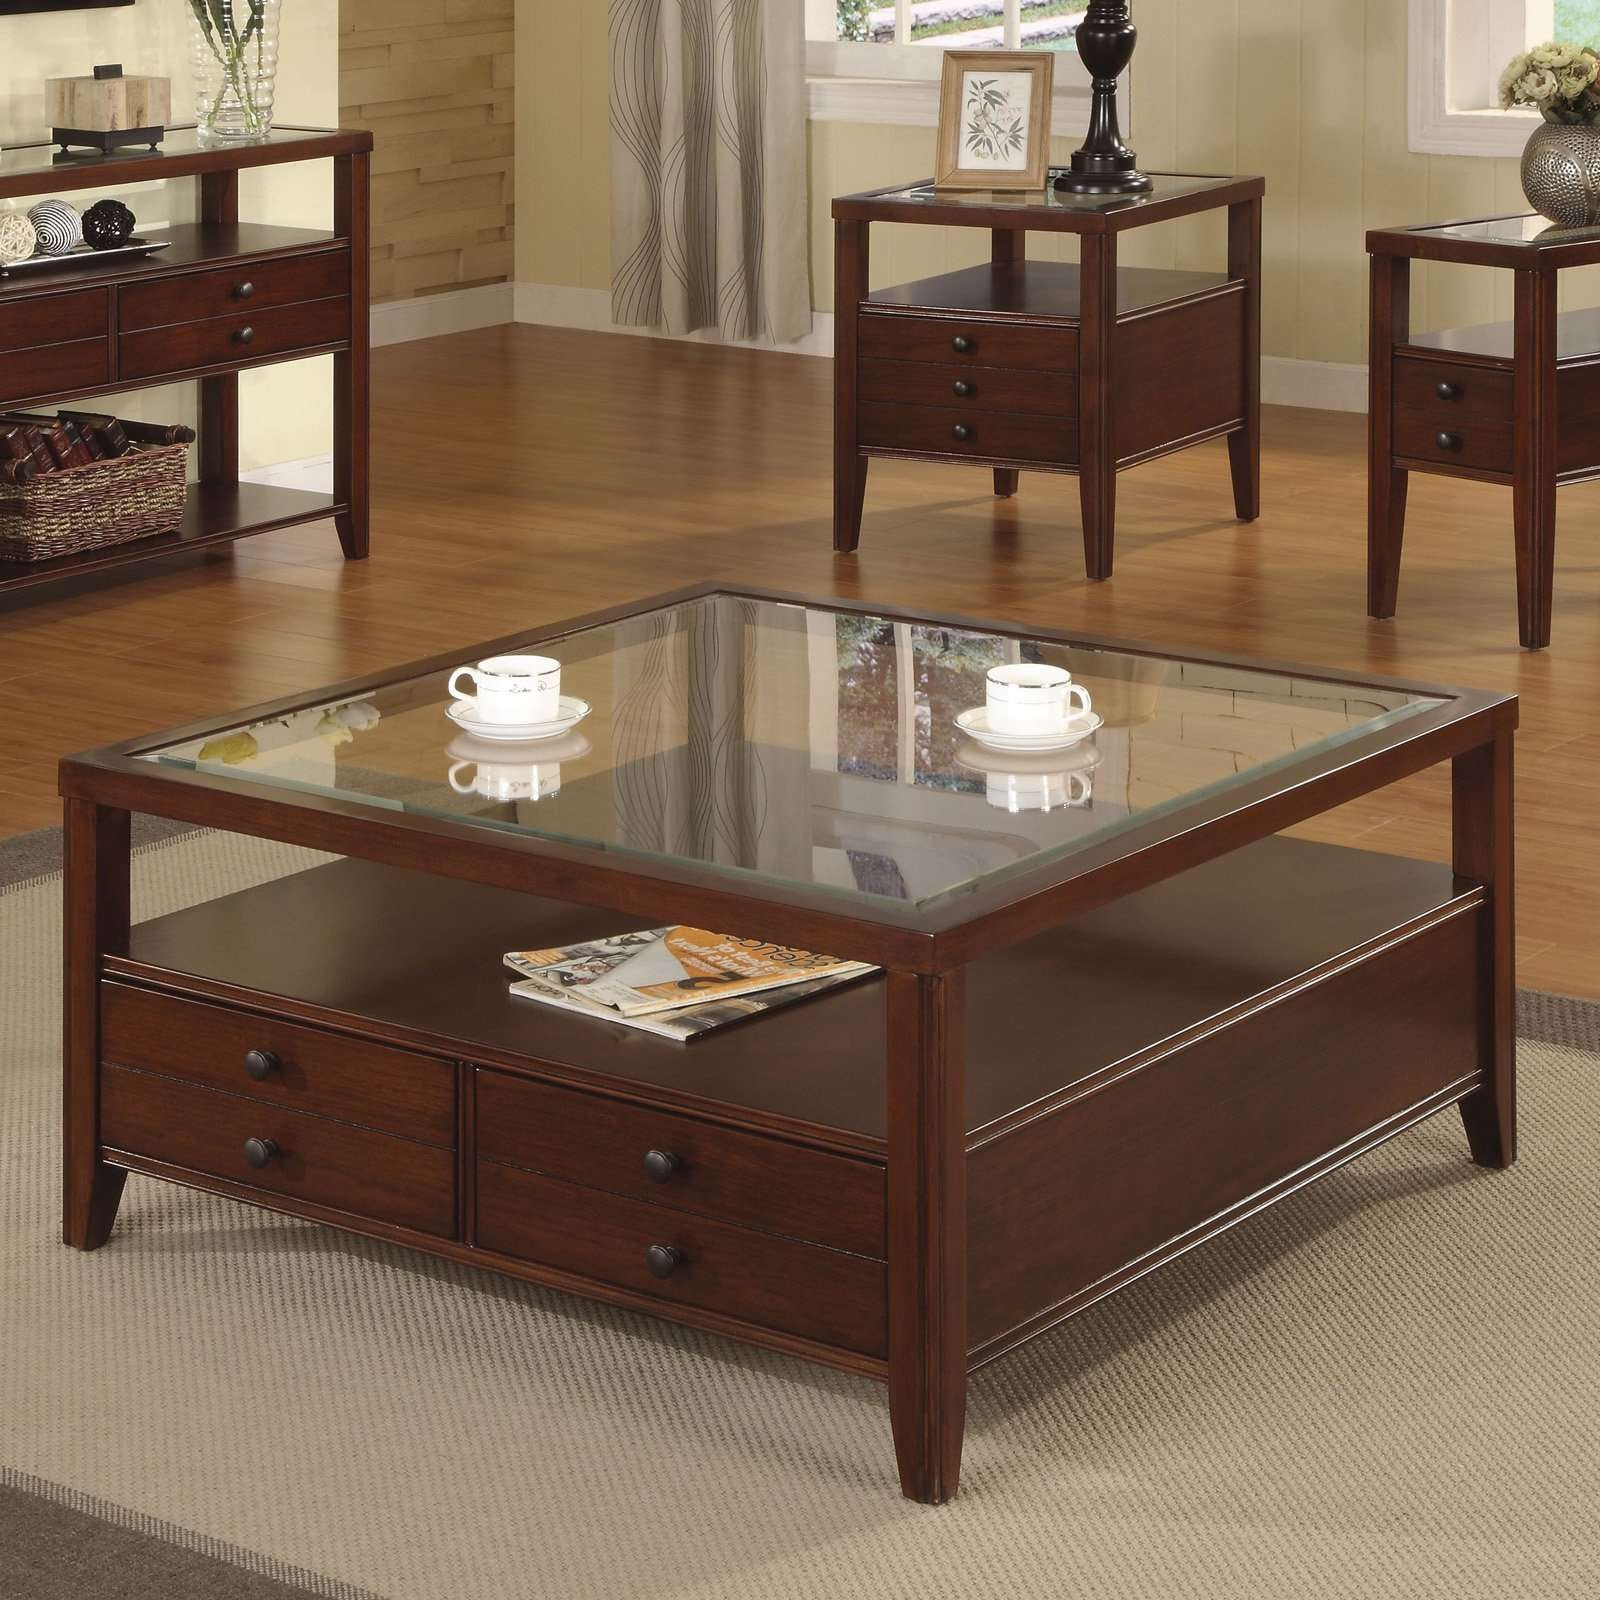 Most Popular Square Coffee Table With Storage Drawers Within Coffee Tables : Storage Tables With Baskets Bedroom Stunning (View 9 of 20)